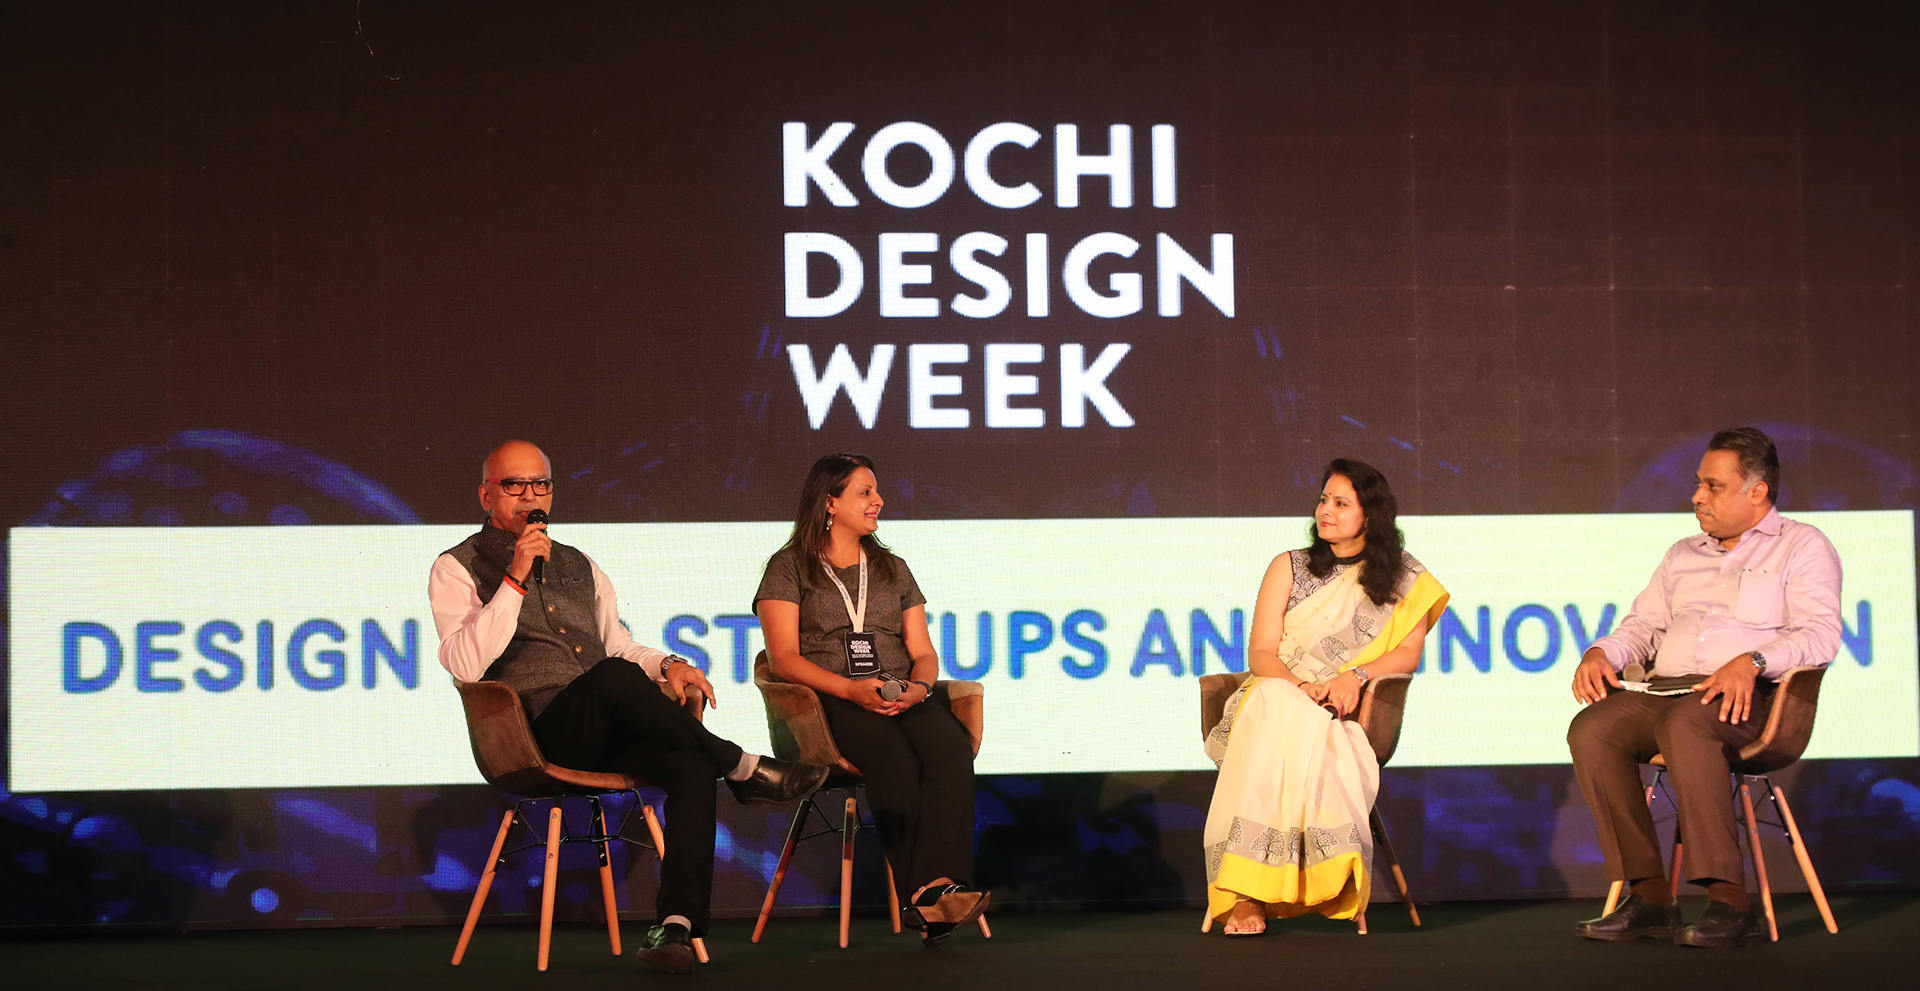 Panel Discussion on Design Startups and Innovation' at the Kochi Design Week 2019 | Kochi Design Week | STIRworld